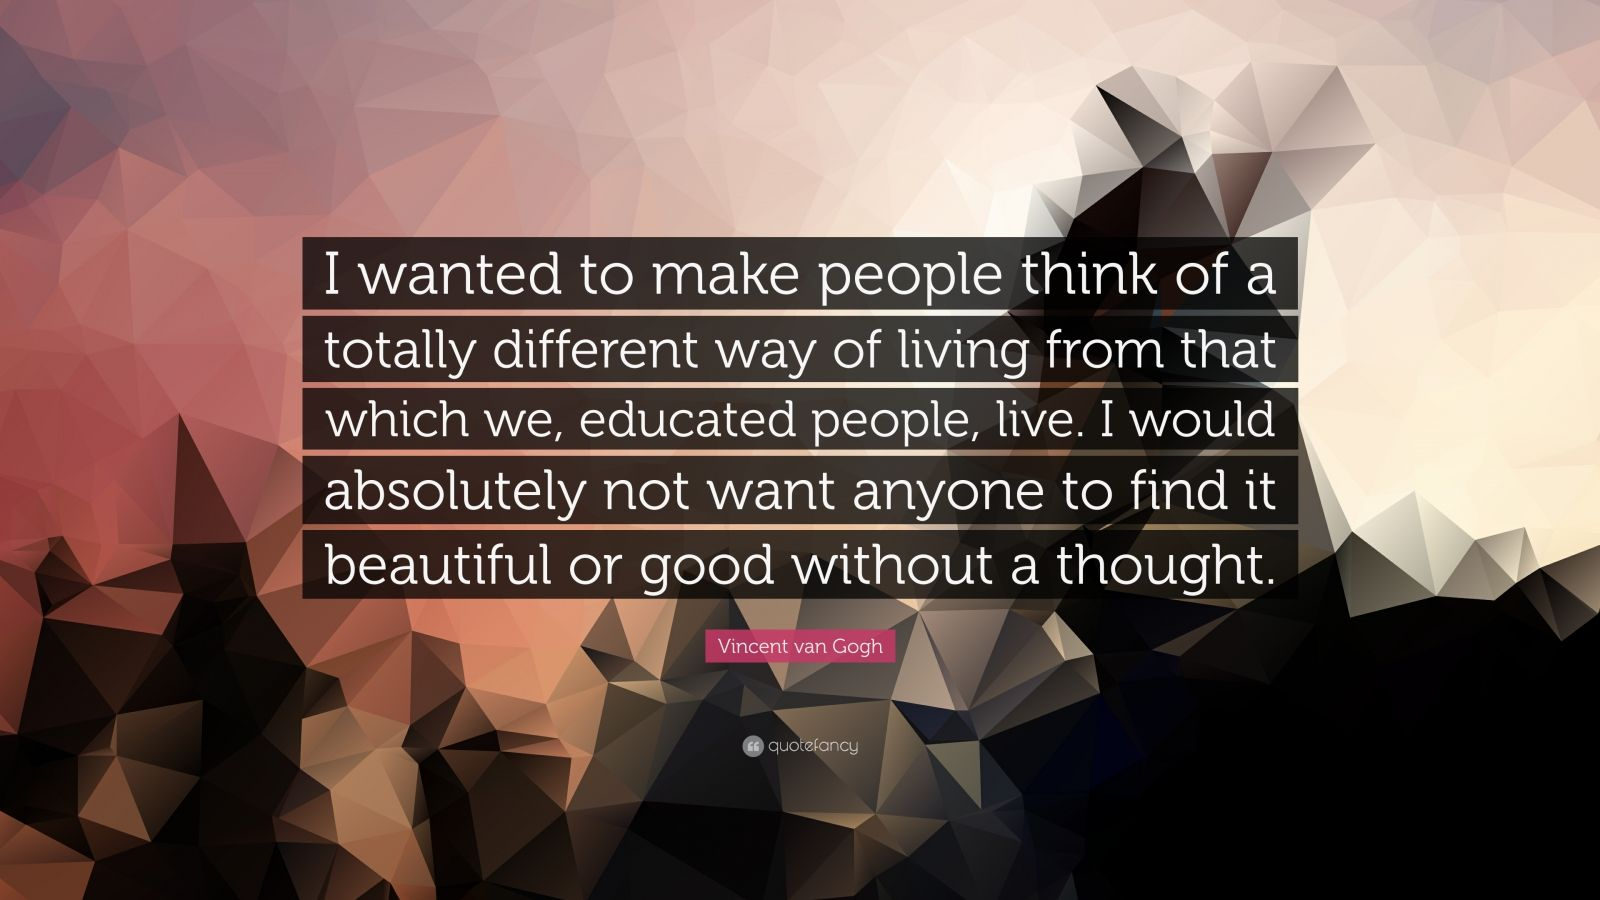 """Vincent van Gogh Quote: """"I wanted to make people think of a totally different way of living from that which we, educated people, live. I would absolutely not want anyone to find it beautiful or good without a thought."""""""